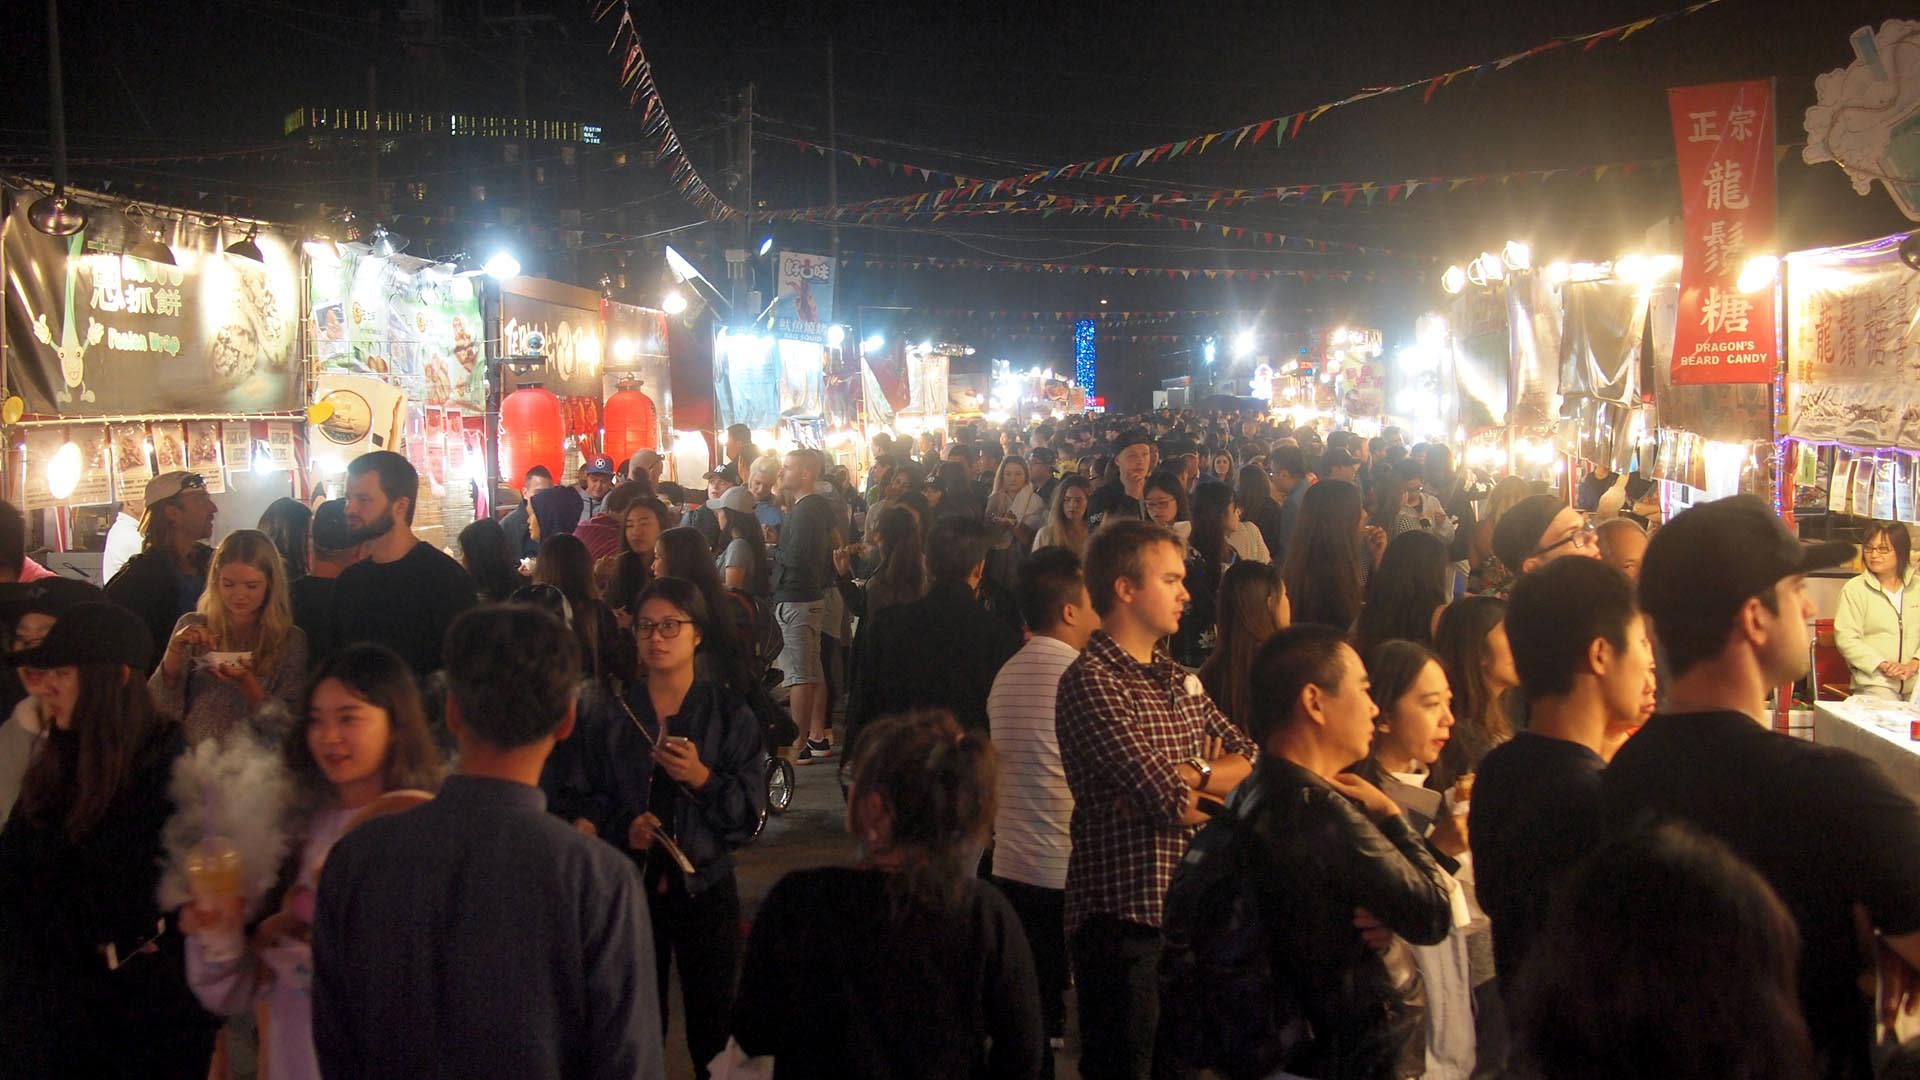 Richmond Night Market, image credit: Michael Kwan